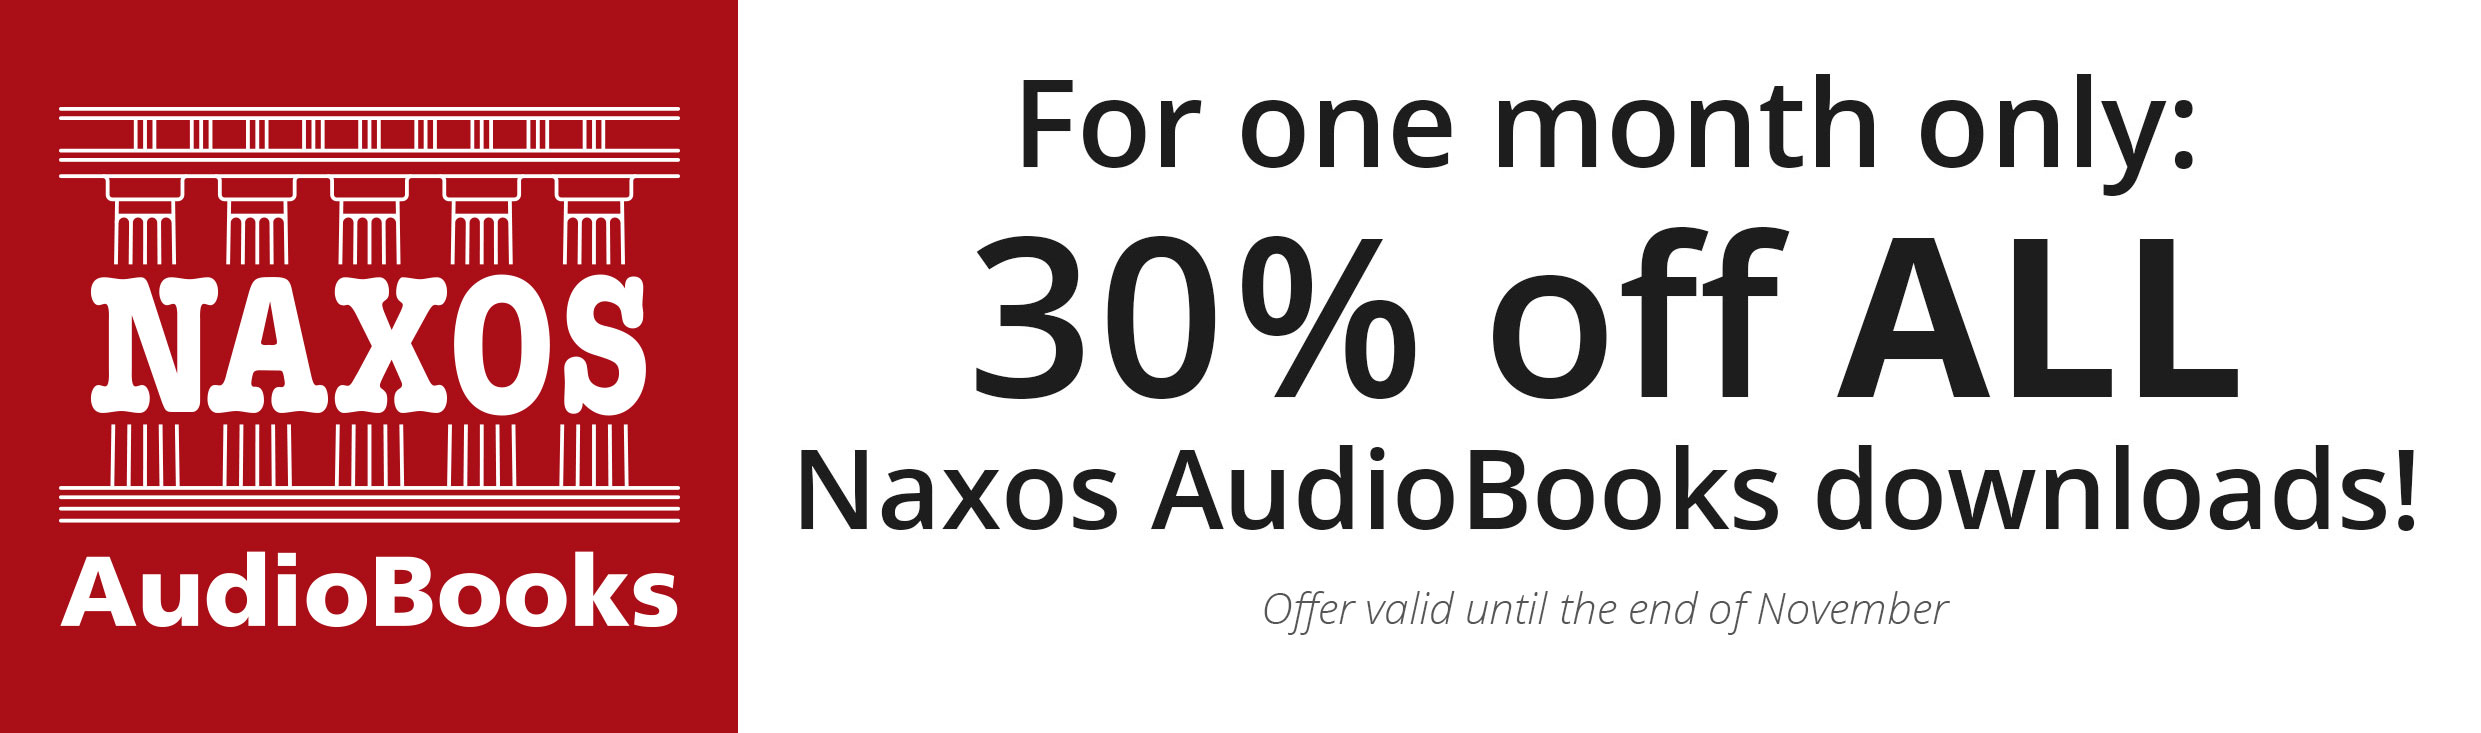 For one month only: 30% off ALL Naxos AudioBooks downloads!